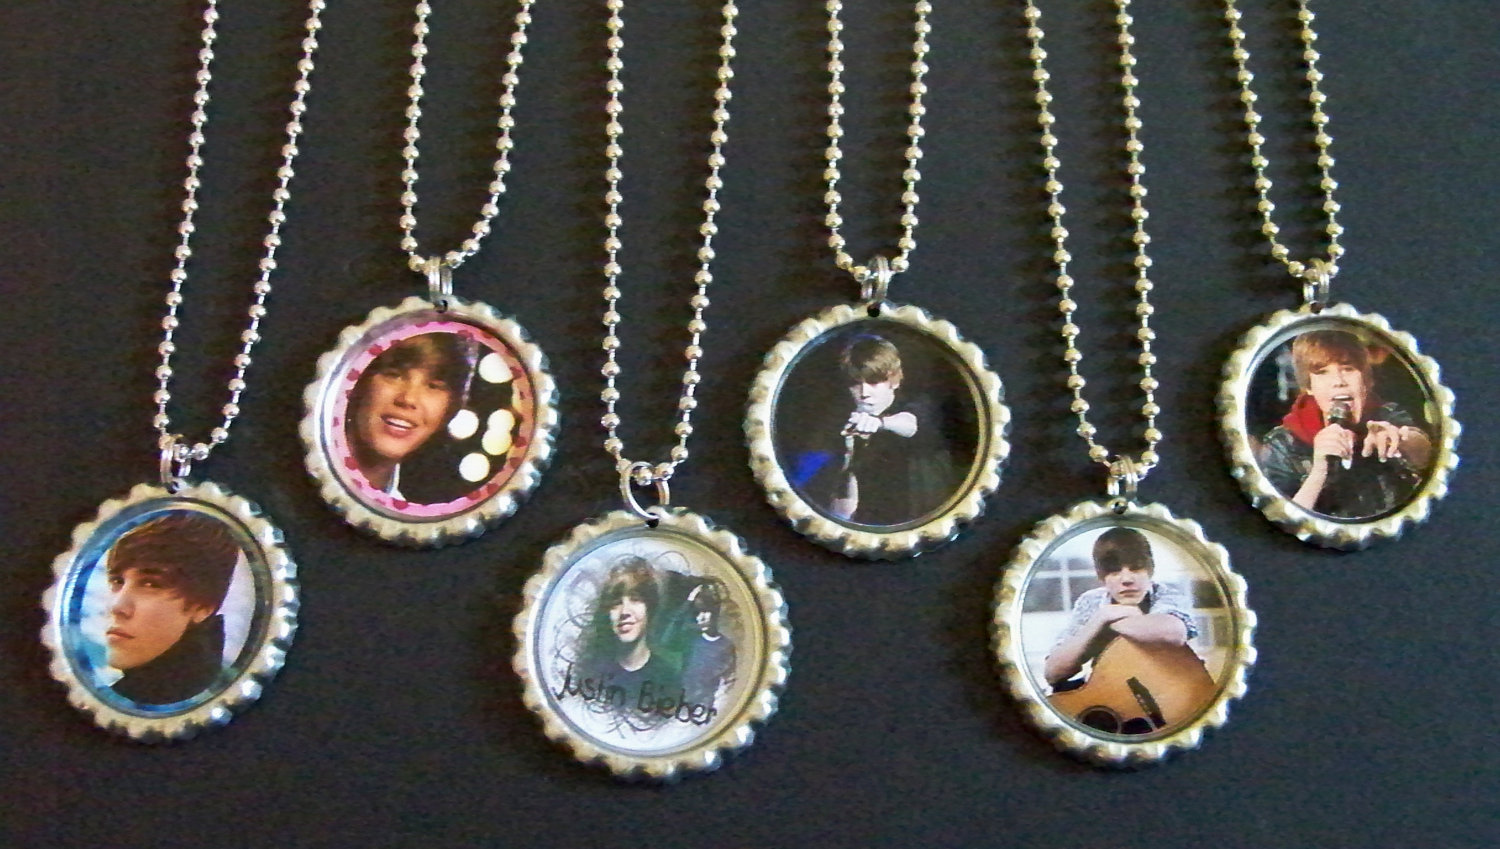 Justin Bieber Birthday Party Favors Ideas